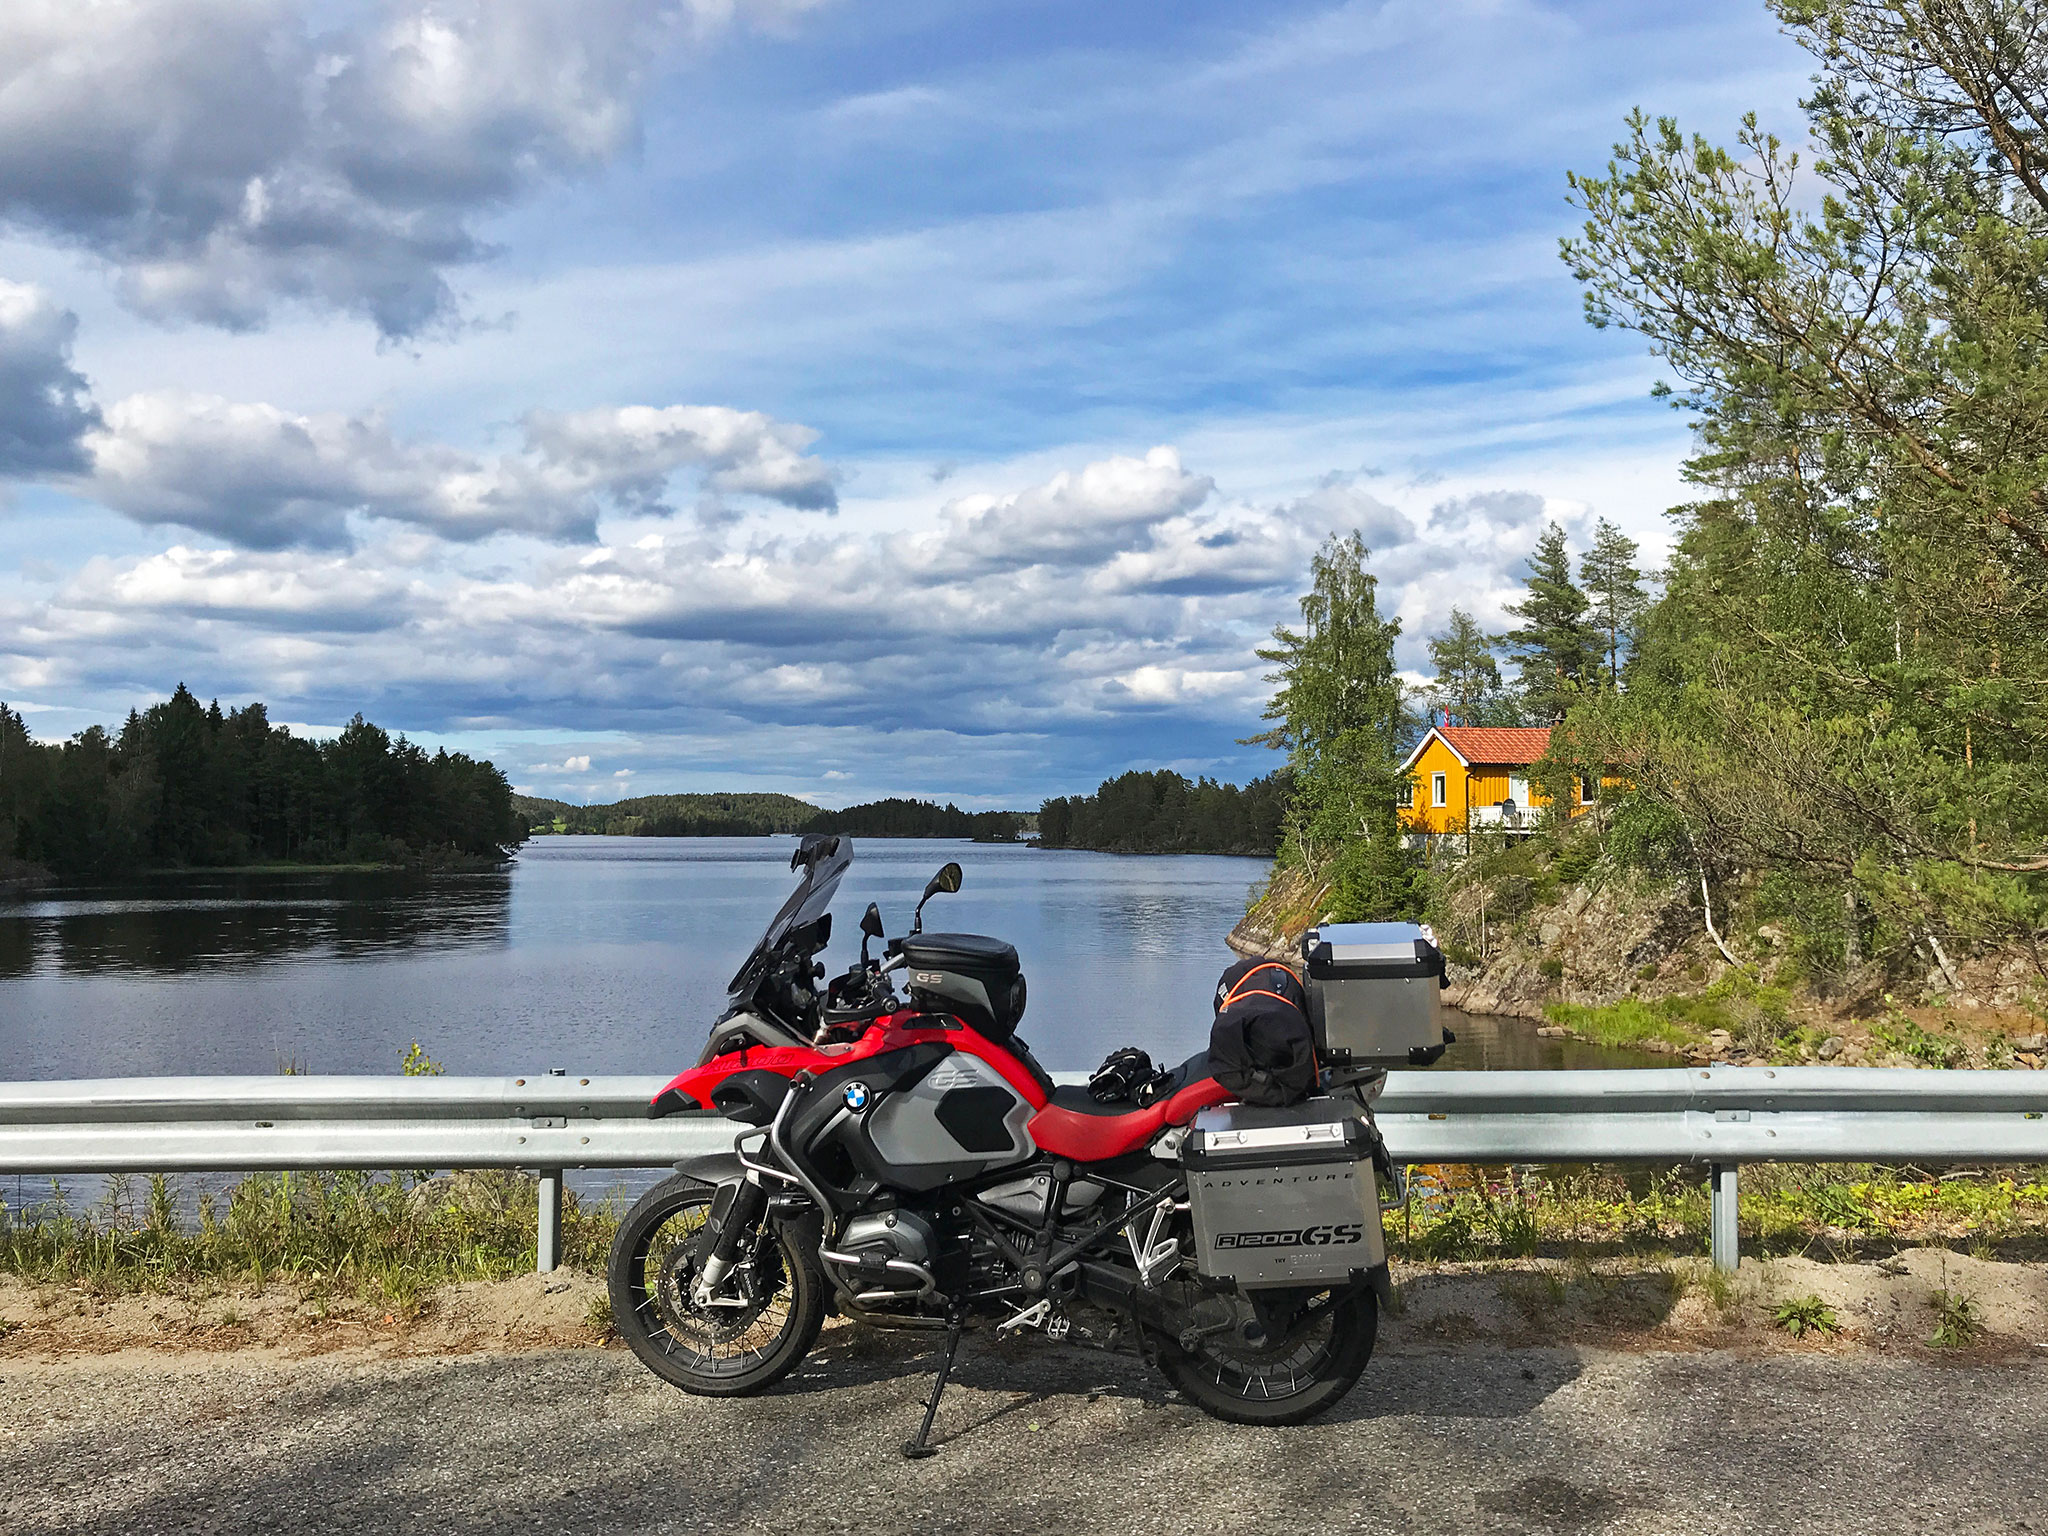 Return north: stopped at Bøensfjorden in Aremark, Norway